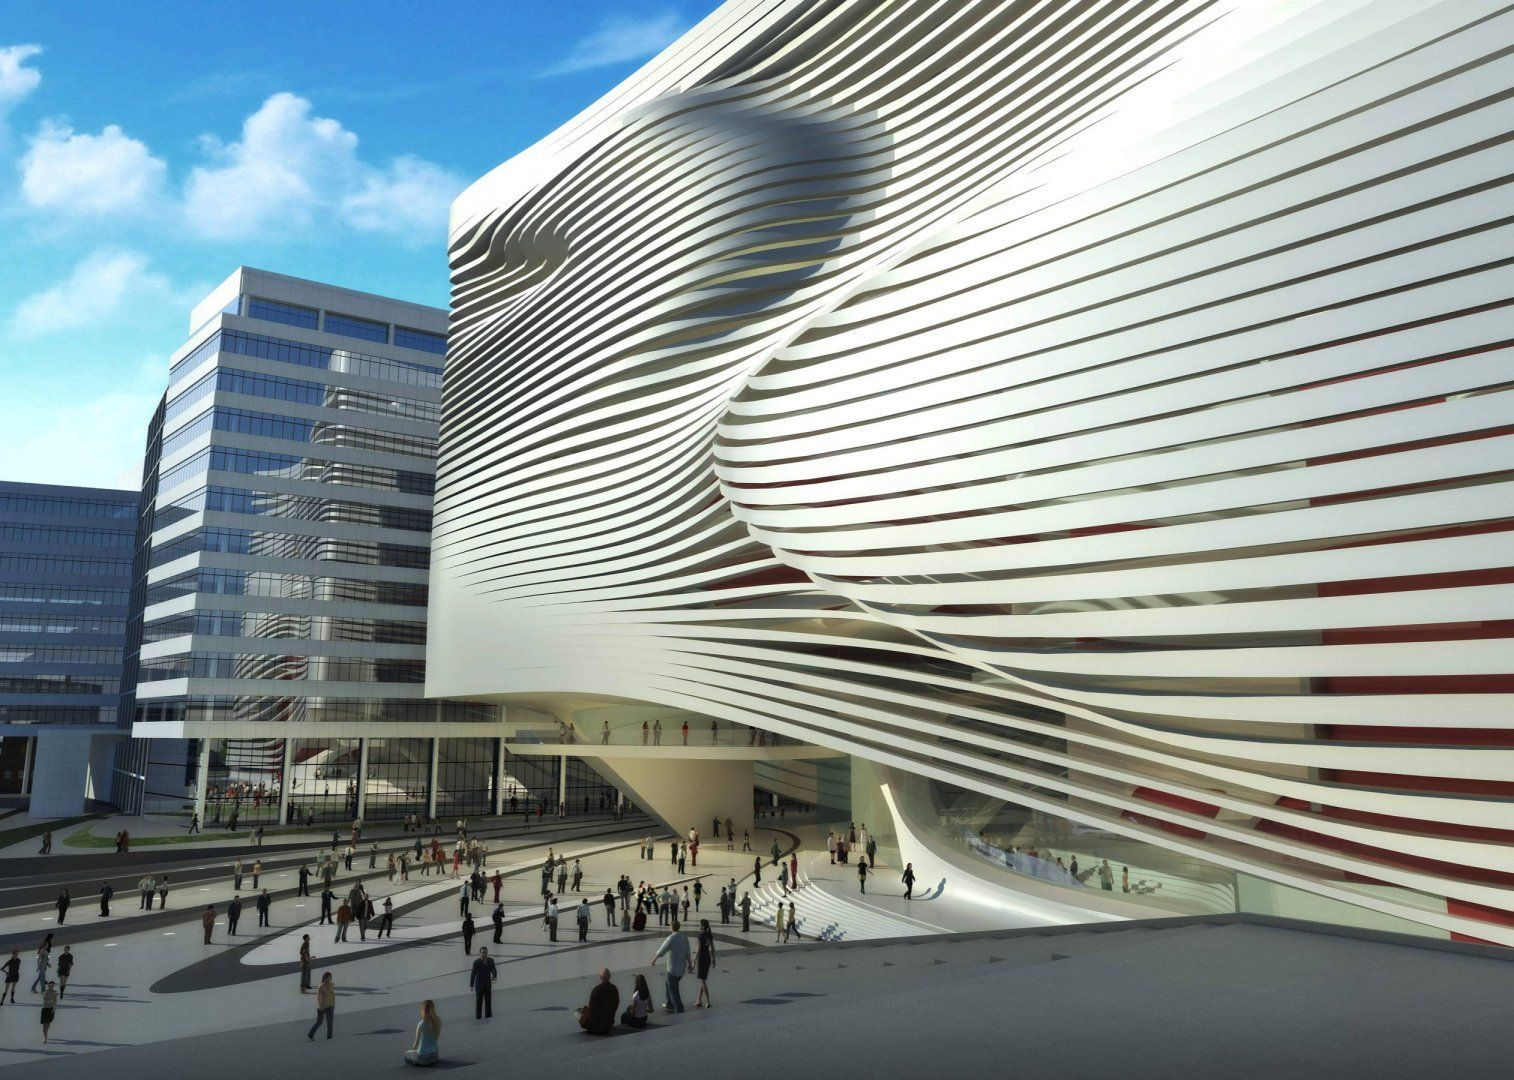 New dance and music centre the hague zaha hadid for House music structure